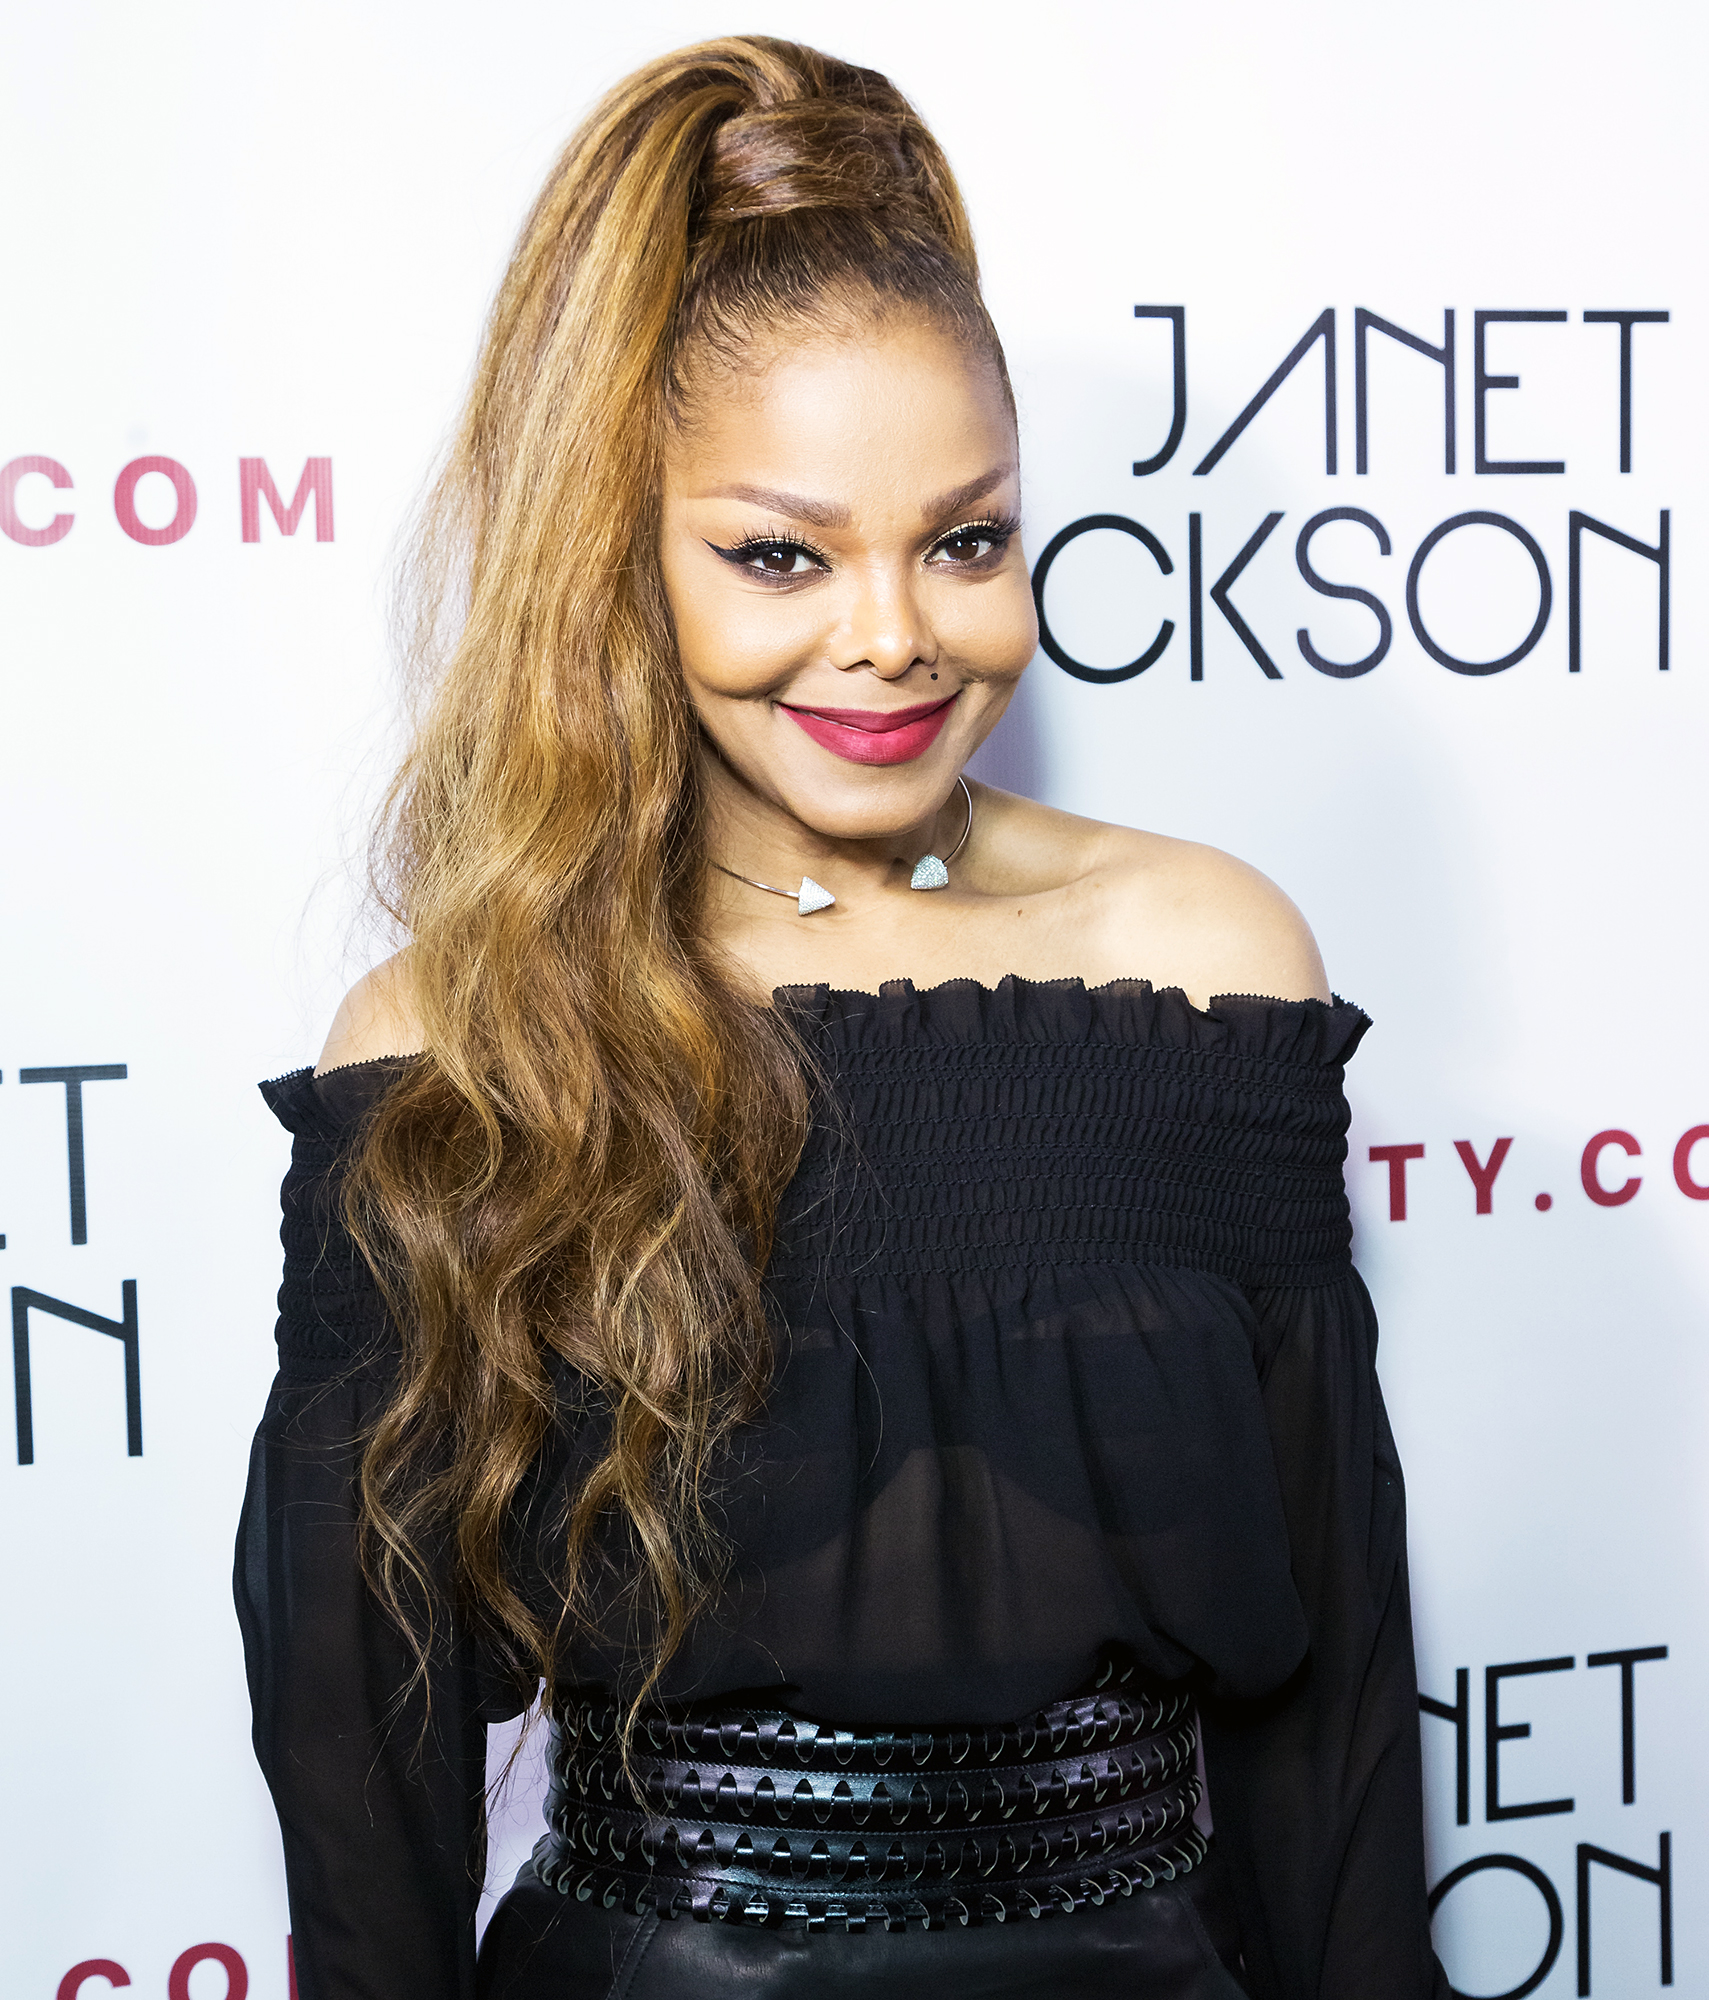 Janet Jackson had police check on son after husband acted 'aggressively'